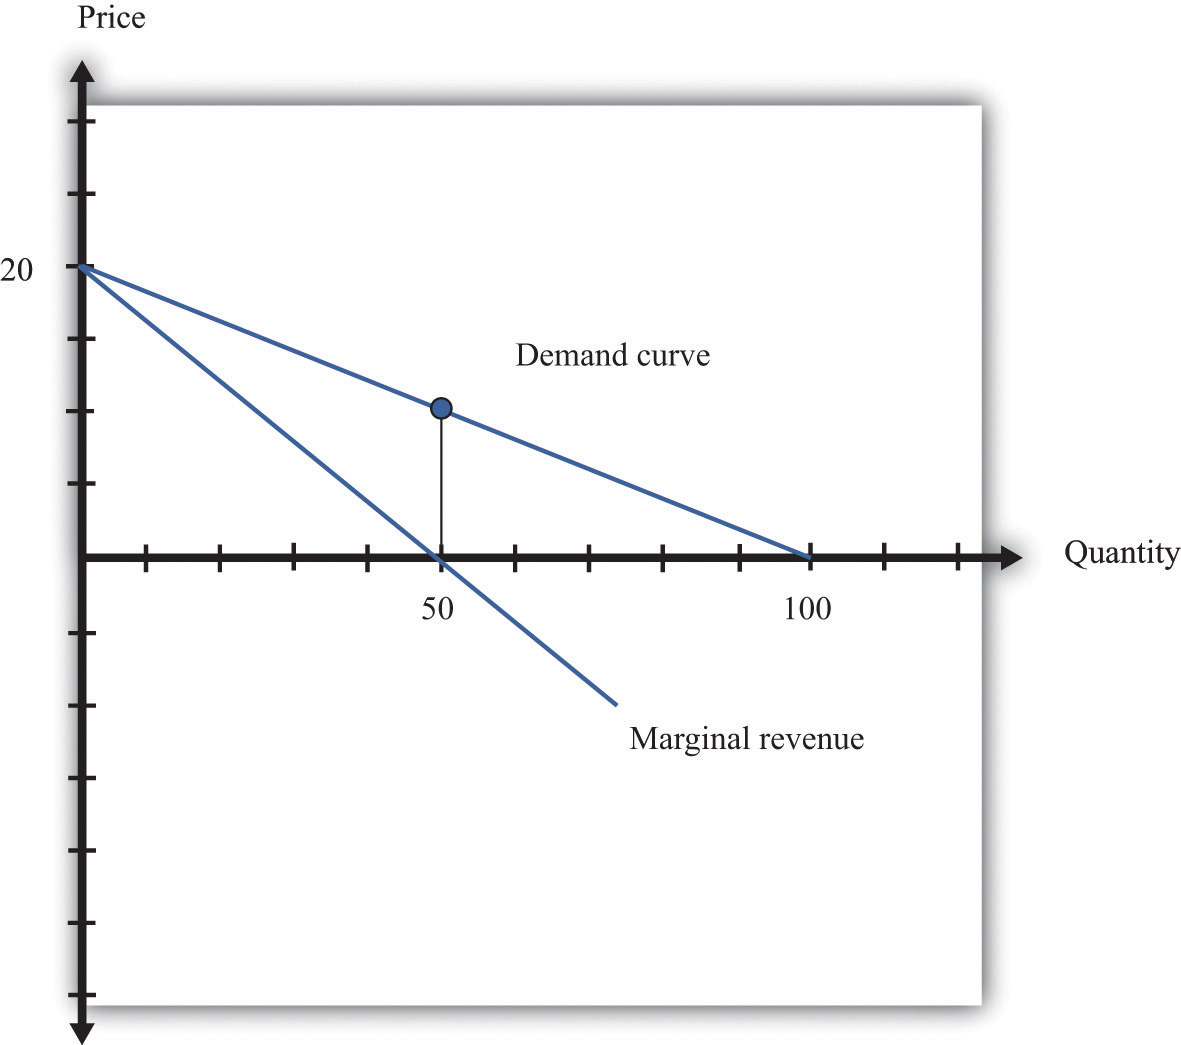 hight resolution of the marginal revenue curve lies below the demand curve because at any quantity marginal revenue is less than price